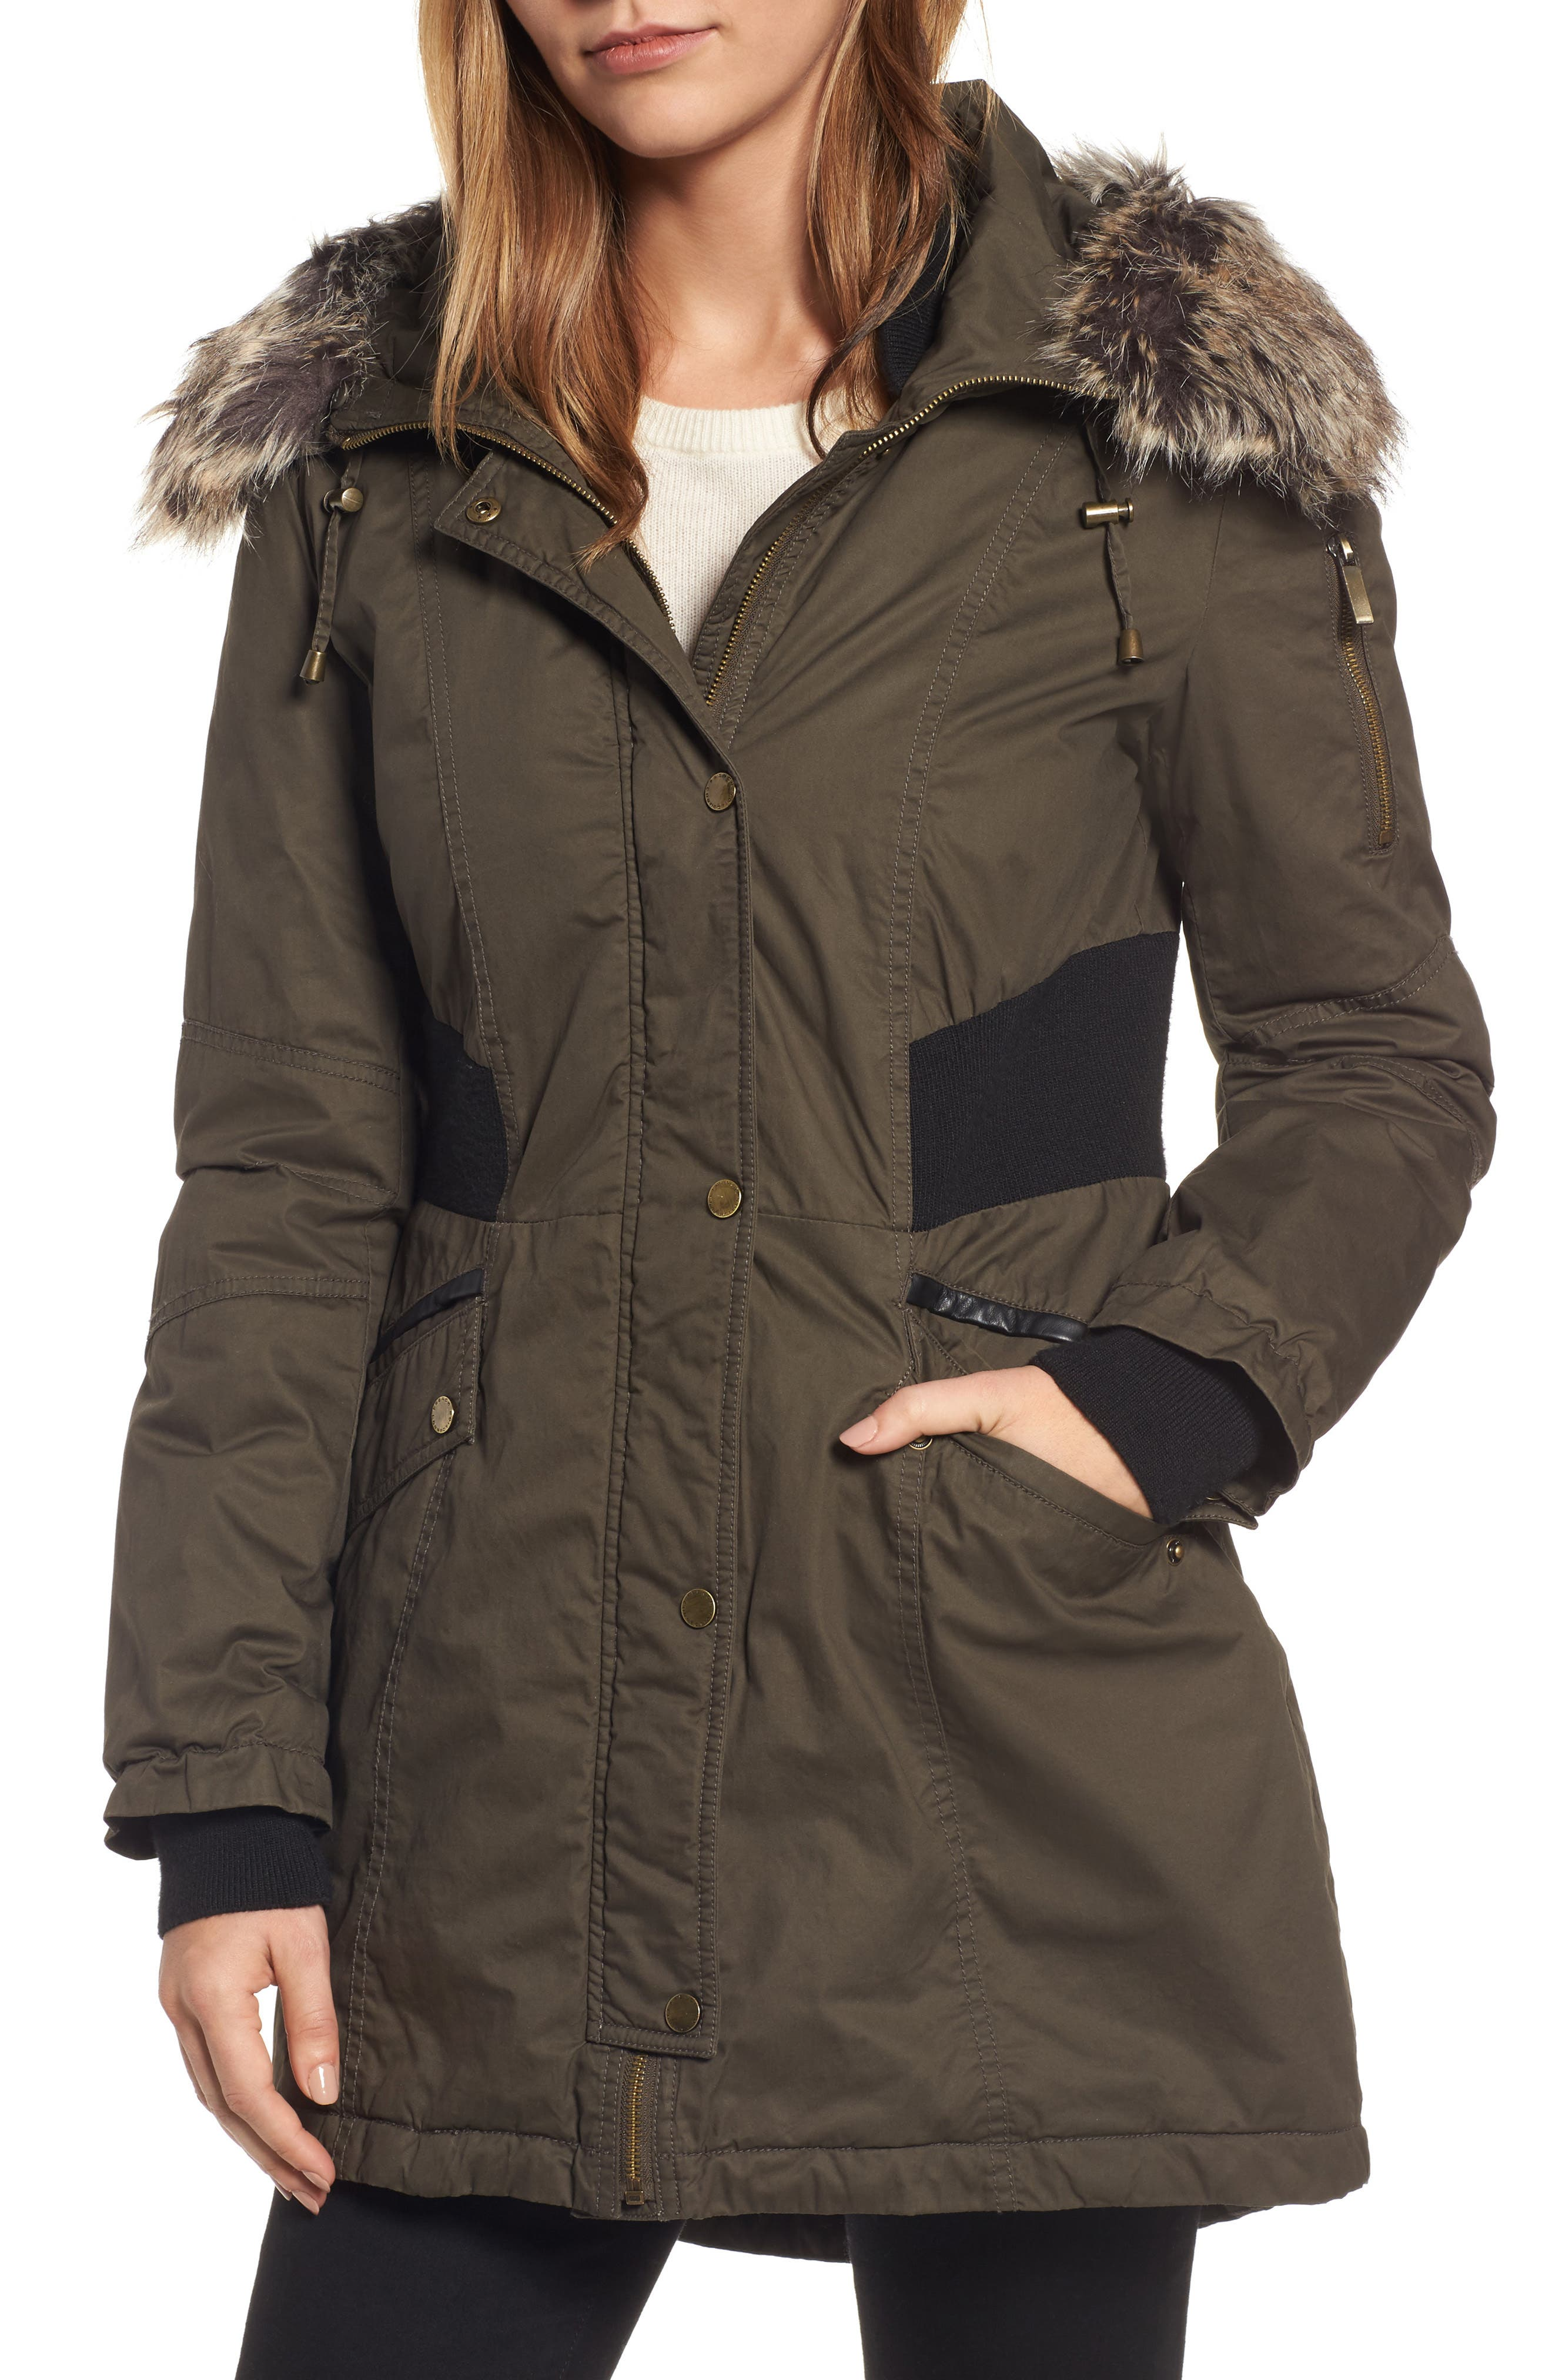 Main Image - French Connection Mixed Media Parka with Faux Fur Trim Hood (Regular & Petite)